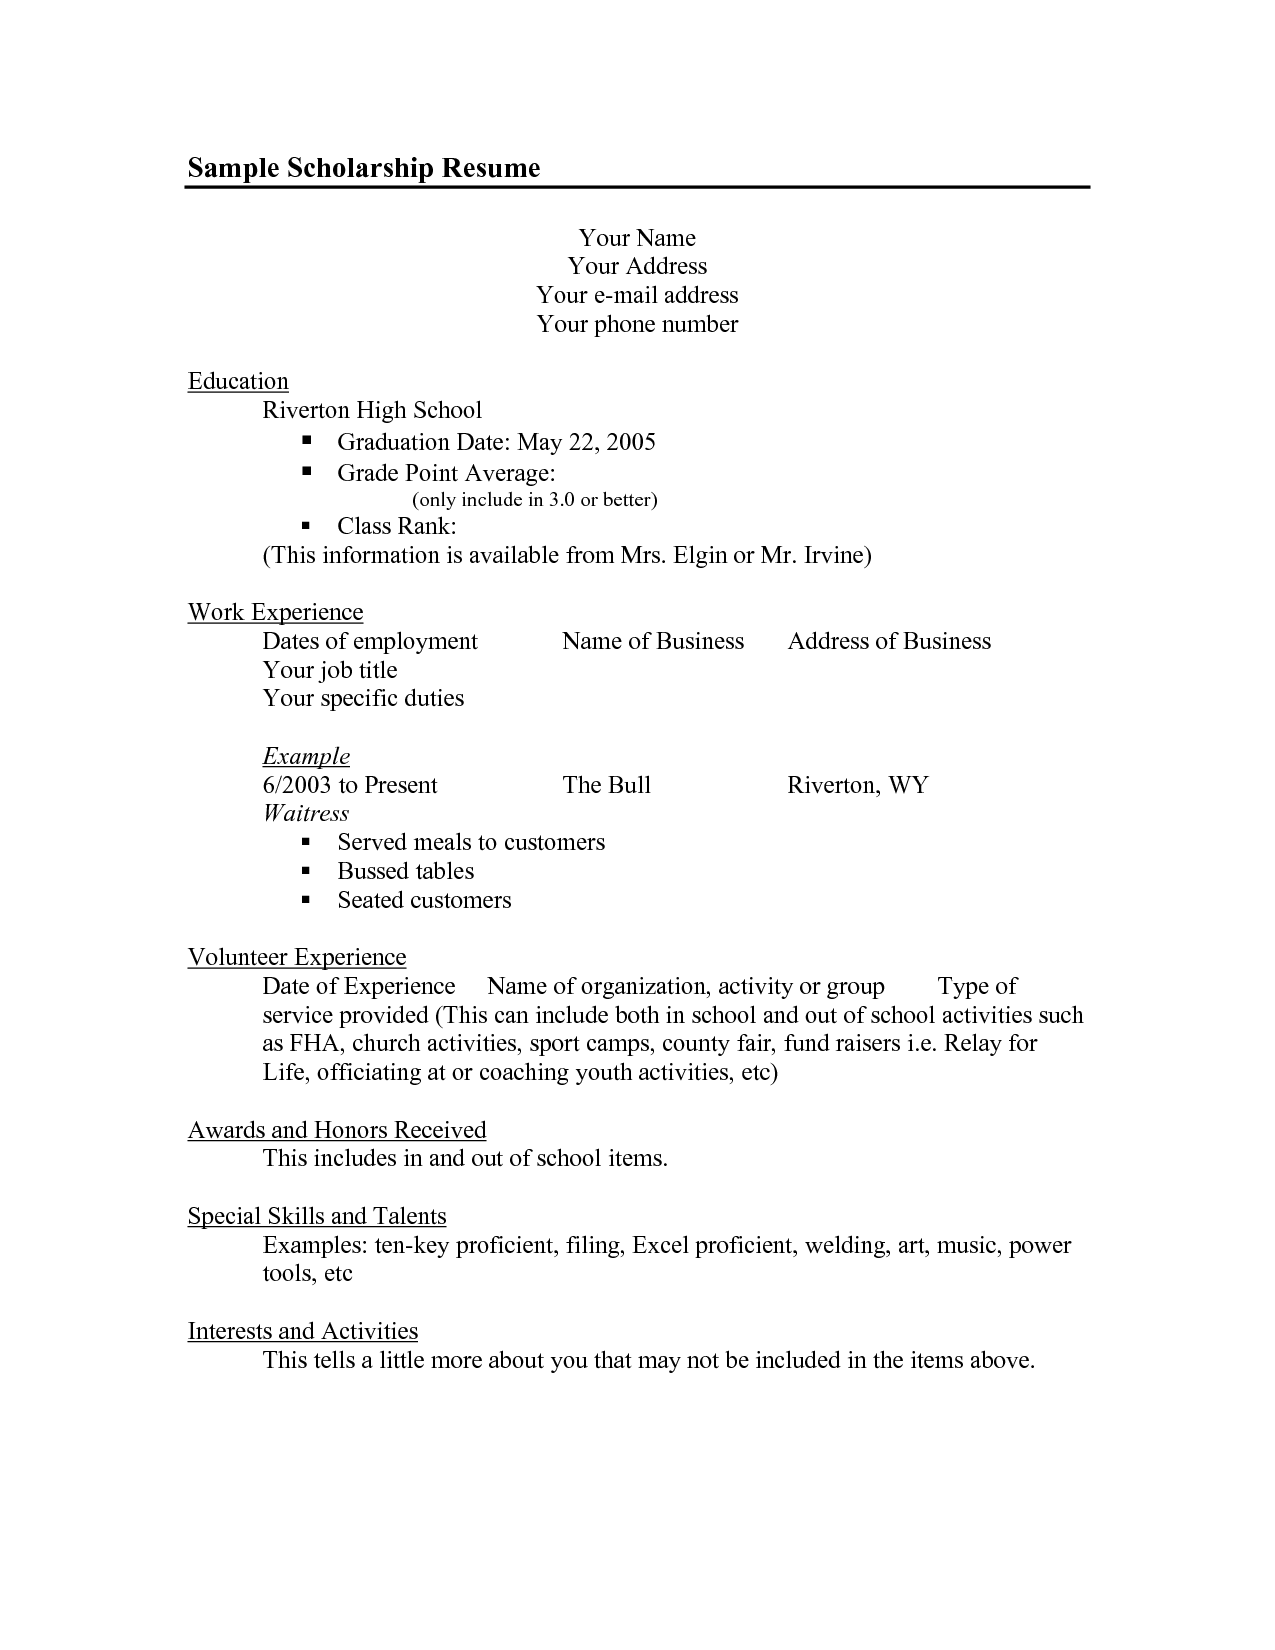 Scholarship Resume Templates | Sample Scholarship Resume Graduation Date  May 22, 2005  Example High School Resume